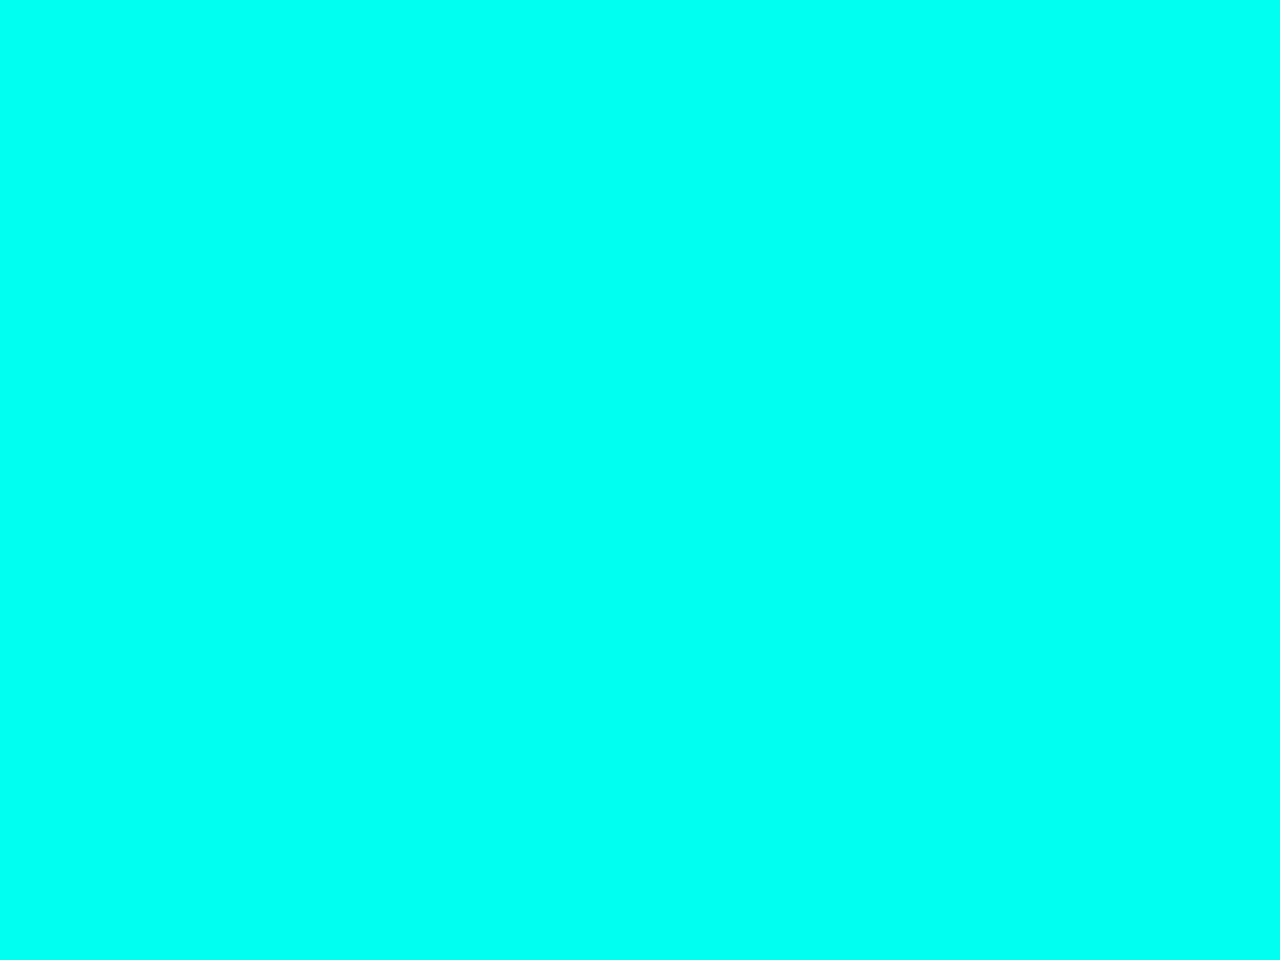 1280x960 Turquoise Blue Solid Color Background